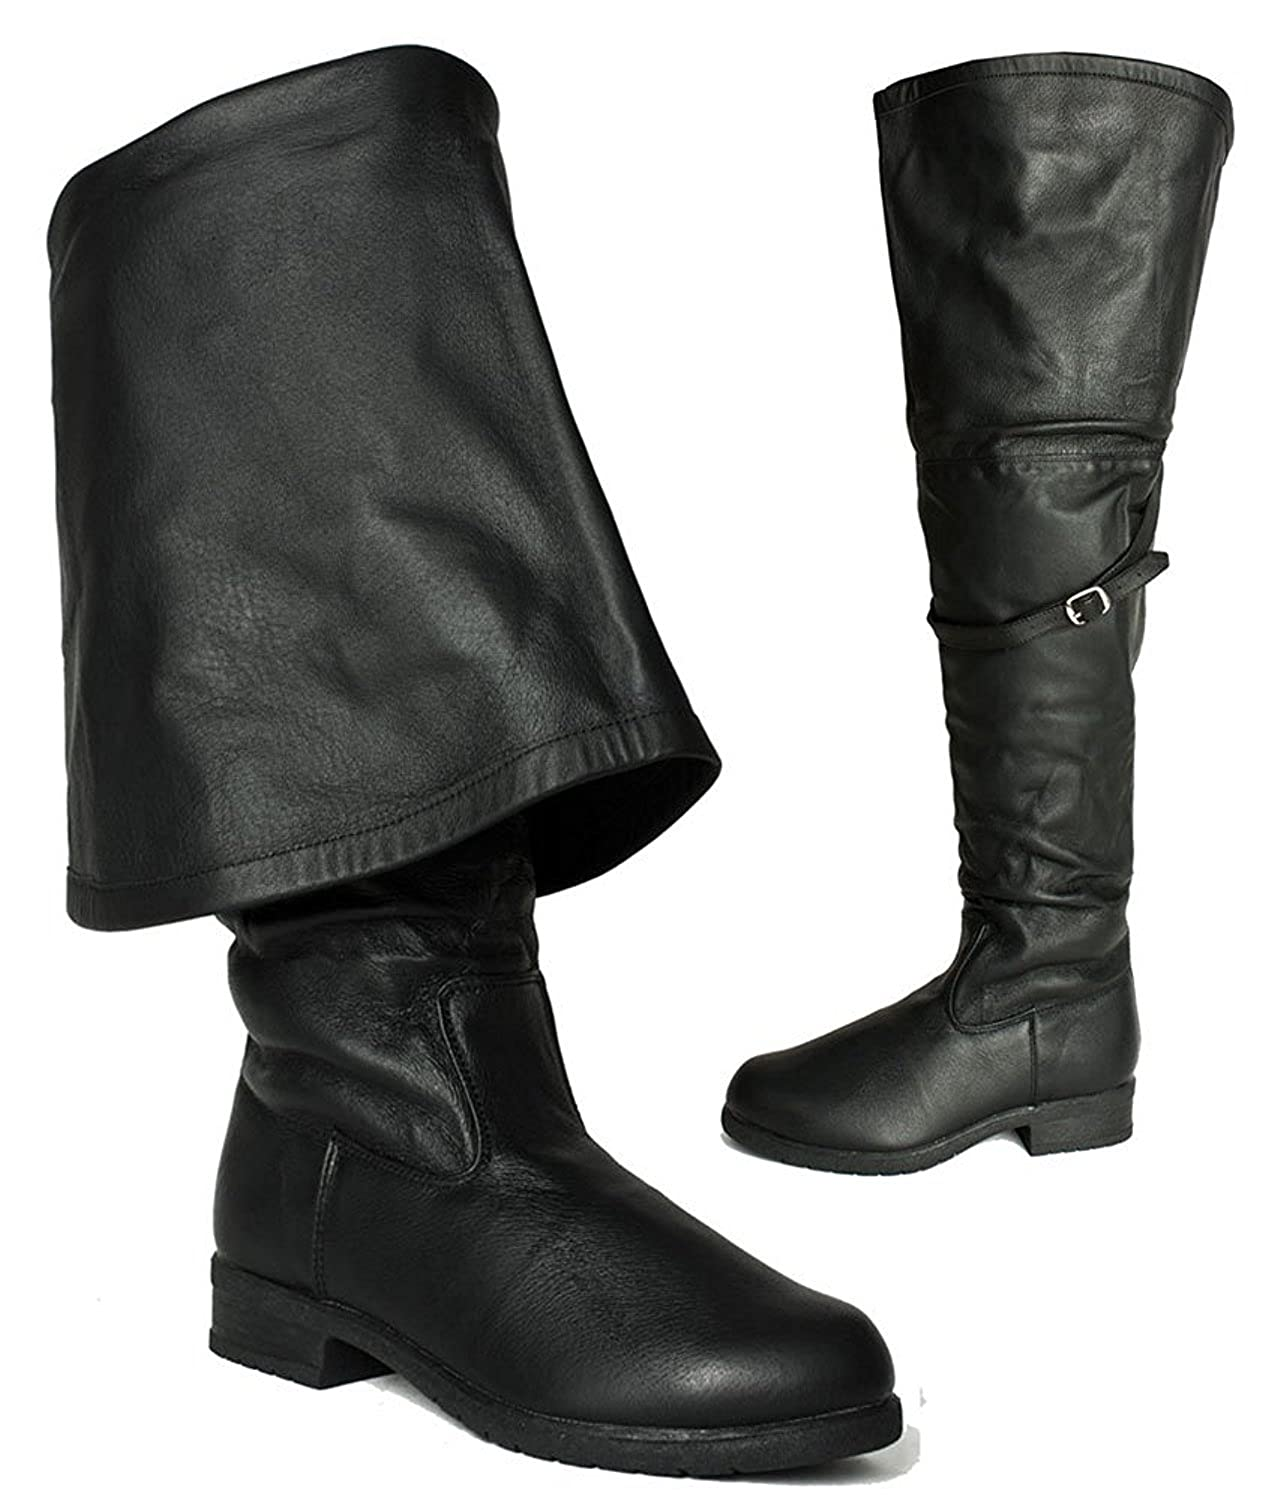 Deluxe Adult Costumes - Men's black Aassassin's Creed, Renaissance, Medieval, or pirate faux leather boots.